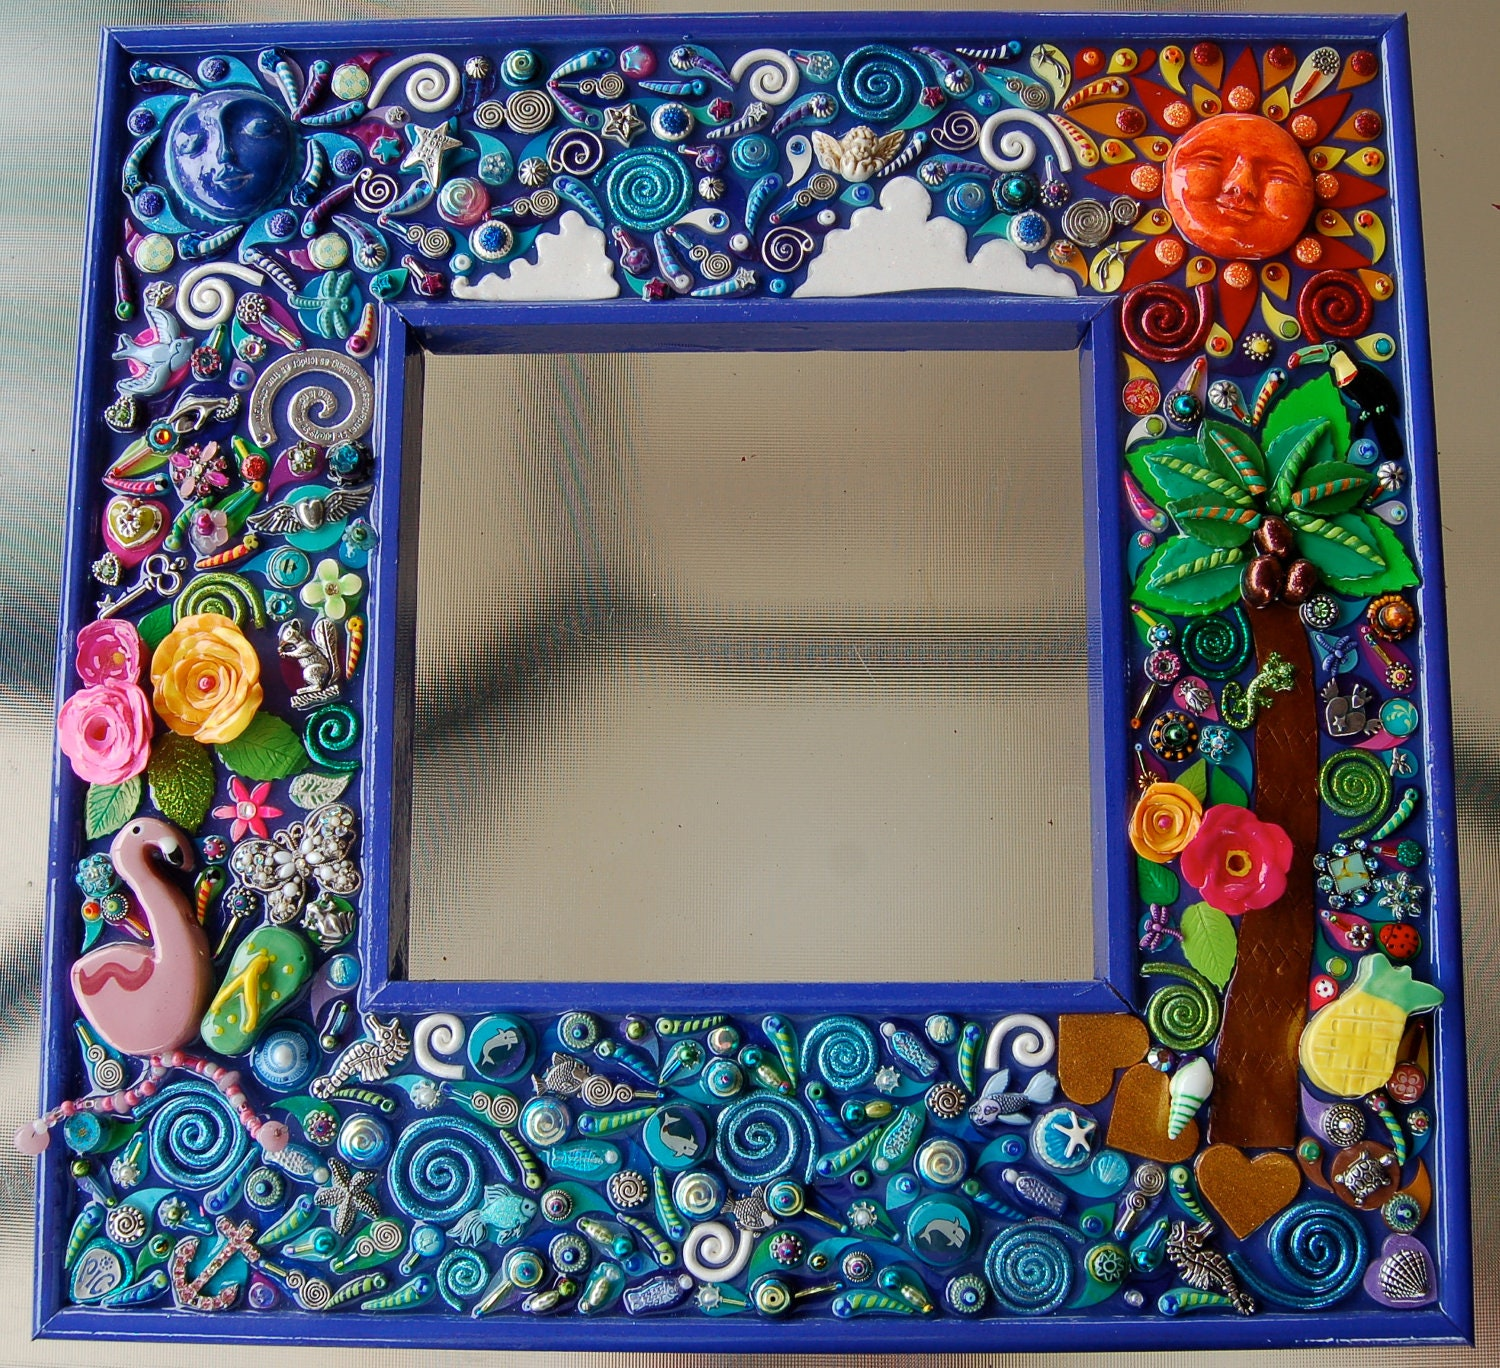 Embellished mirror life 39 s a beach ooak custom made by for Embellished mirror frame